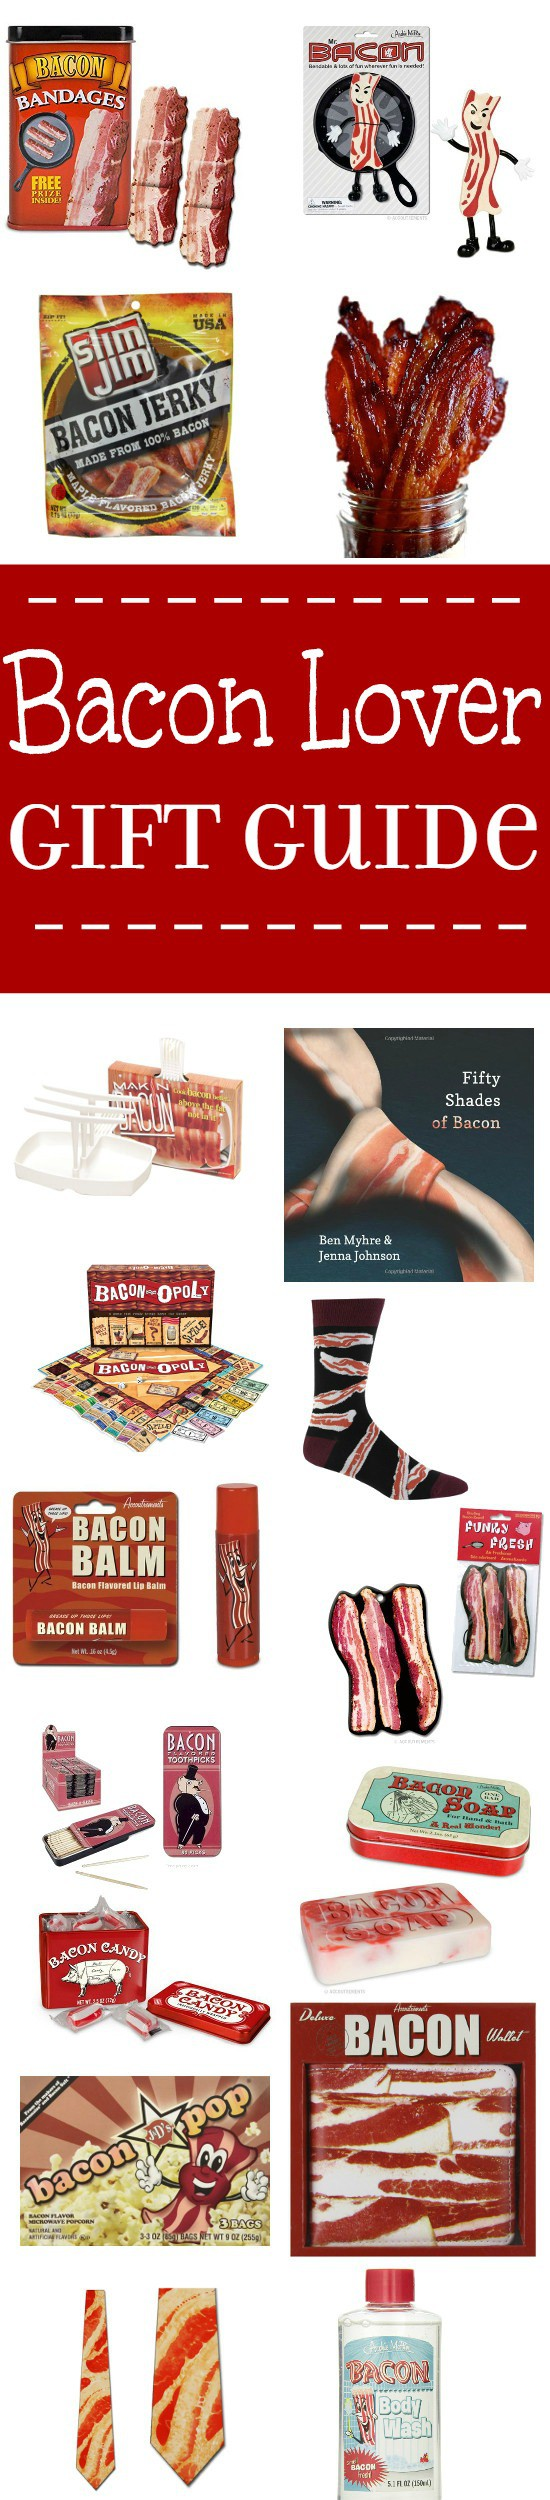 Top 22 gifts that are perfect for the Bacon Lover in your life.  Bacon Lover gift ideas that are great for the holidays and Christmas gift ideas featuring bacon, bacon, and more BACON! Okay, who doesn't love bacon?!  These fun bacon lover gift ideas and trinkets are great for anyone on your list! I mean, what bacon lover doesn't want bacon lip balm and bacon body wash? (Okay, some of these might also make fun white elephant gifts too!)